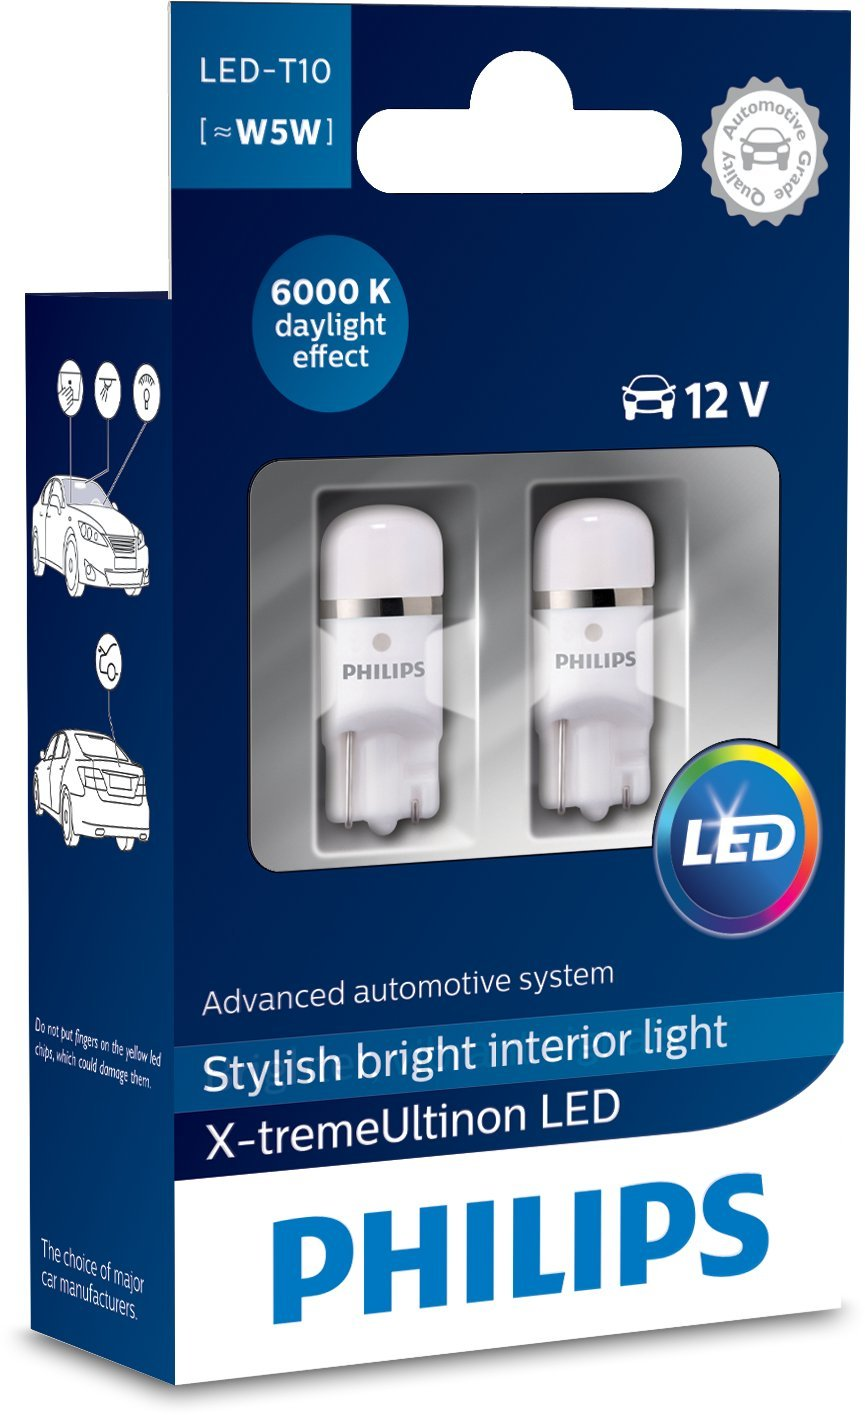 Philips 12799I60X2 X-tremeUltinon LED Interior car Light W5W T10 6000K 12V, Set of 2, Set of 2 Lumileds Germany GmbH